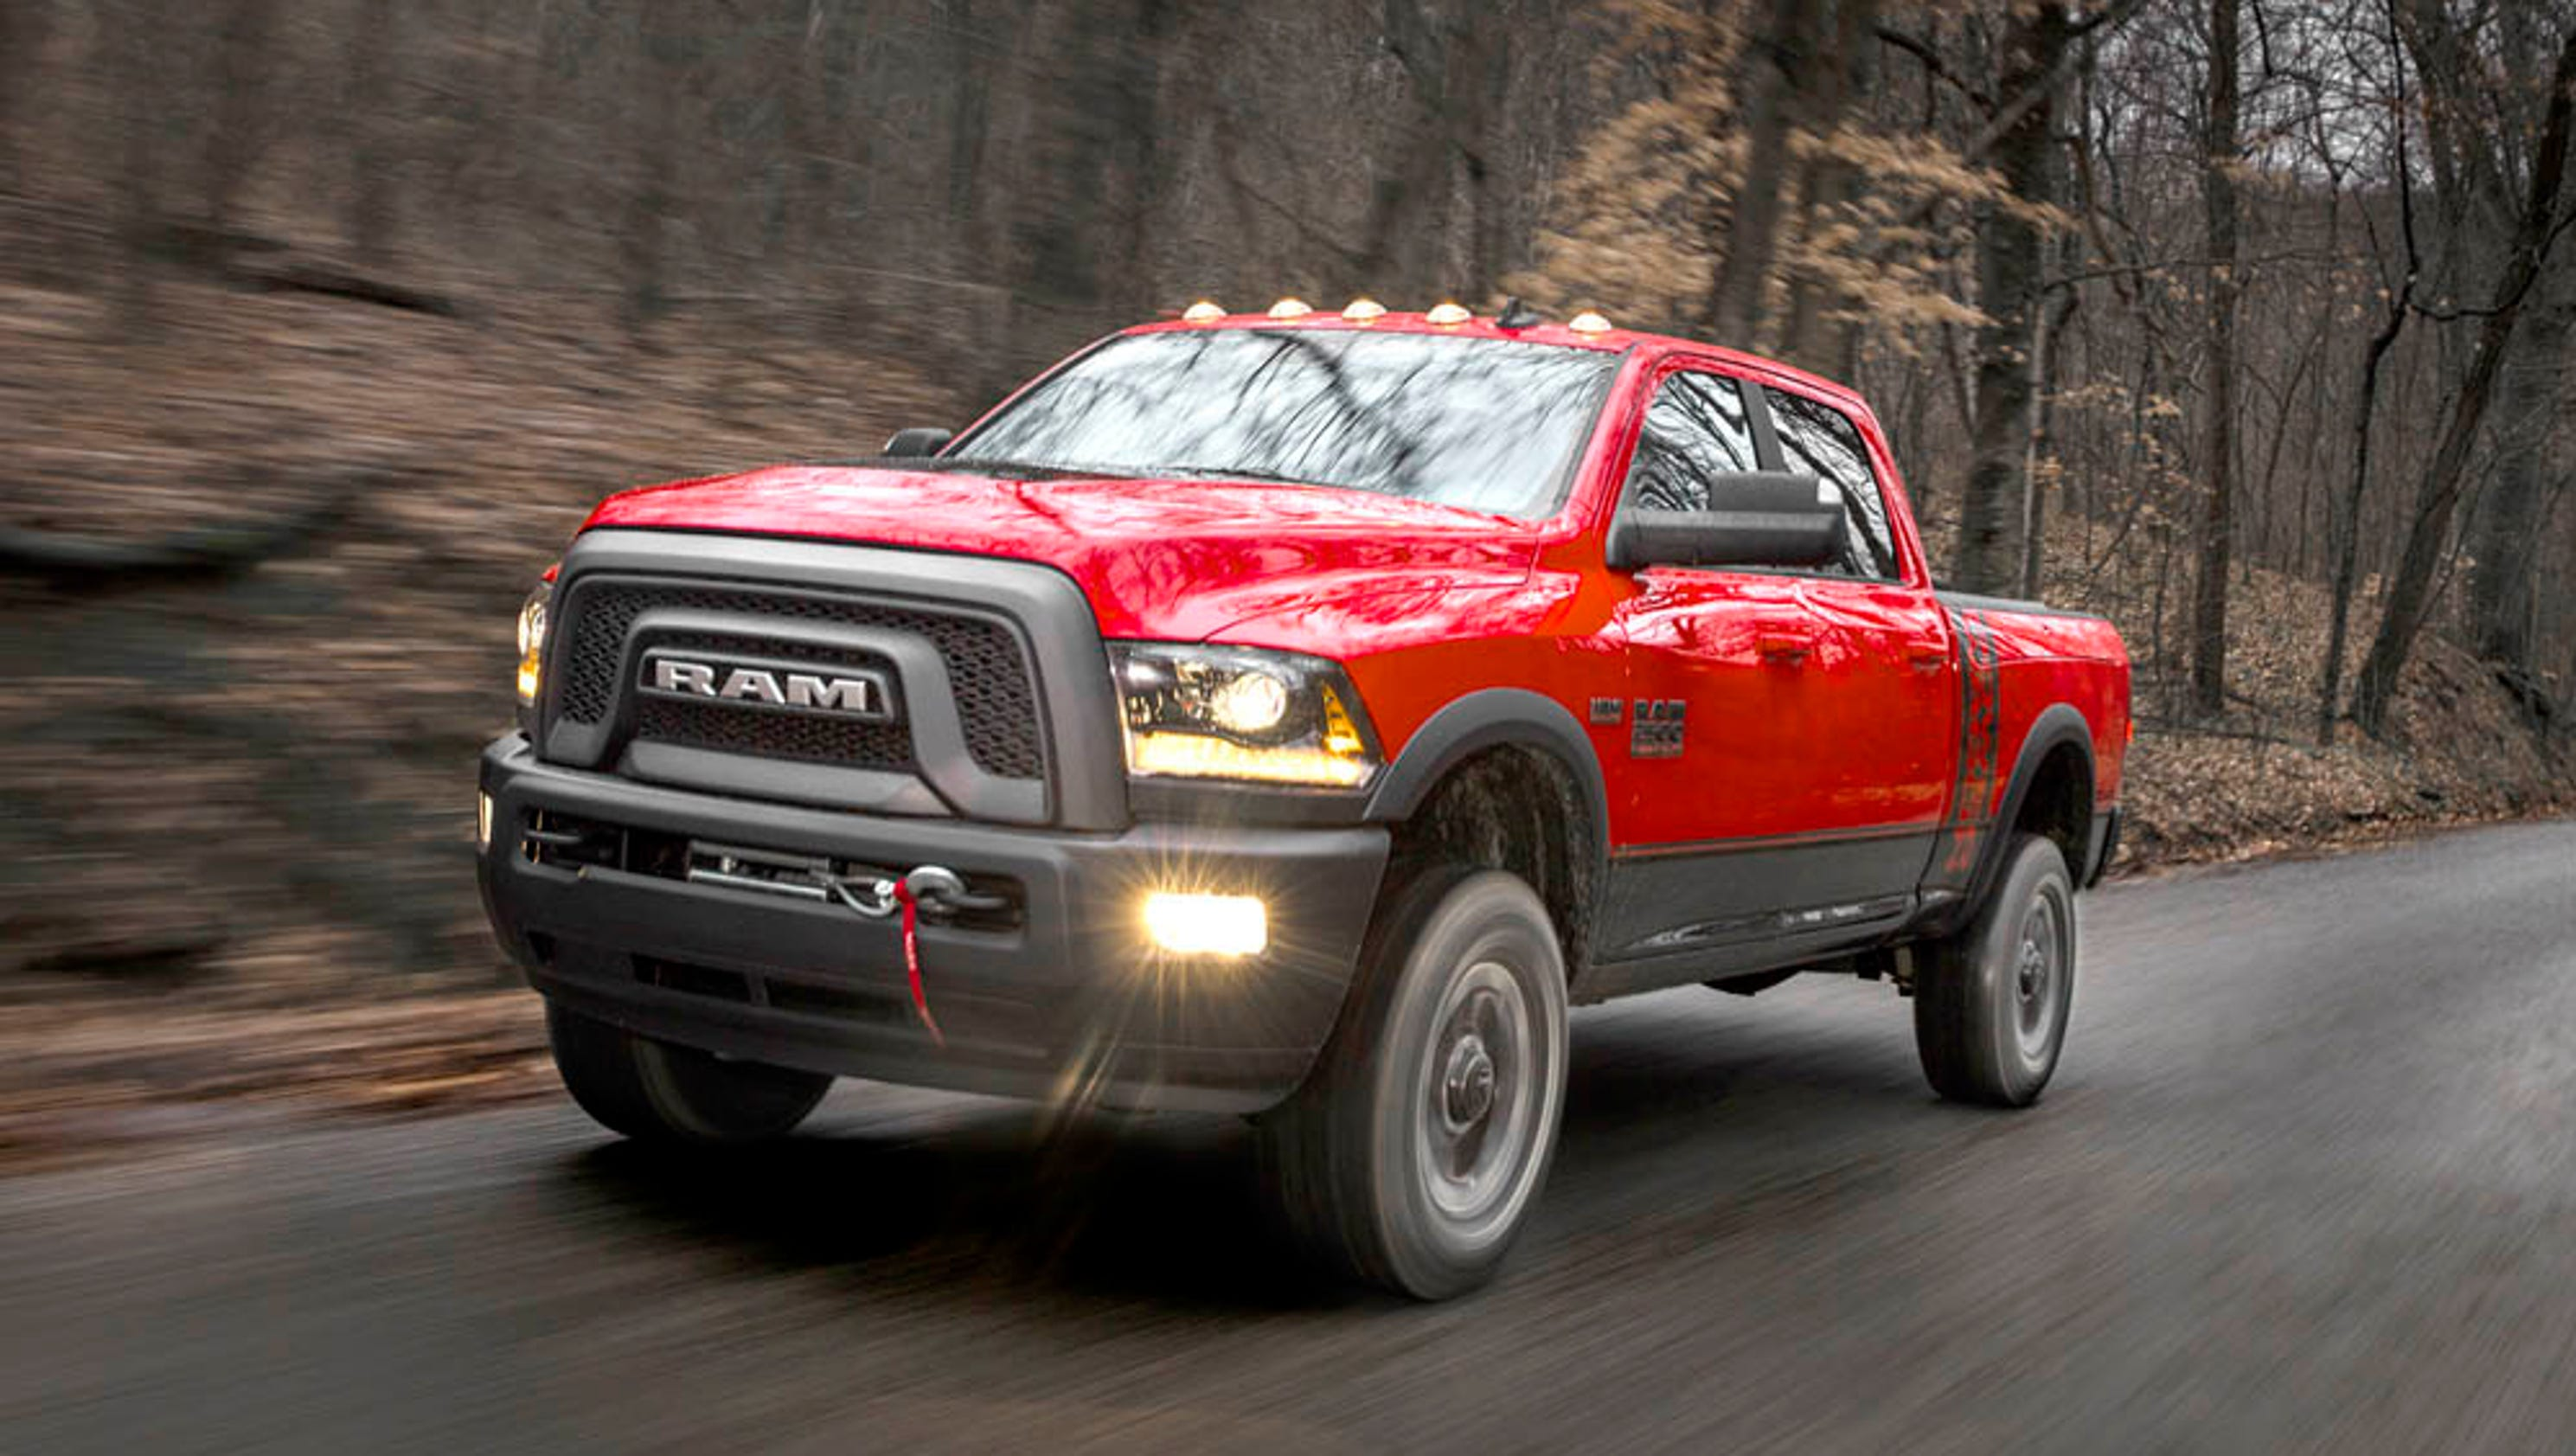 Watch furthermore 2019 Dodge Ram 2500 Diesel Price Mega Cab moreover 2017 Dodge Avenger Spec besides 2019 Ram 1500 Redesign moreover Ramcharger. on 2017 dodge power wagon 2500